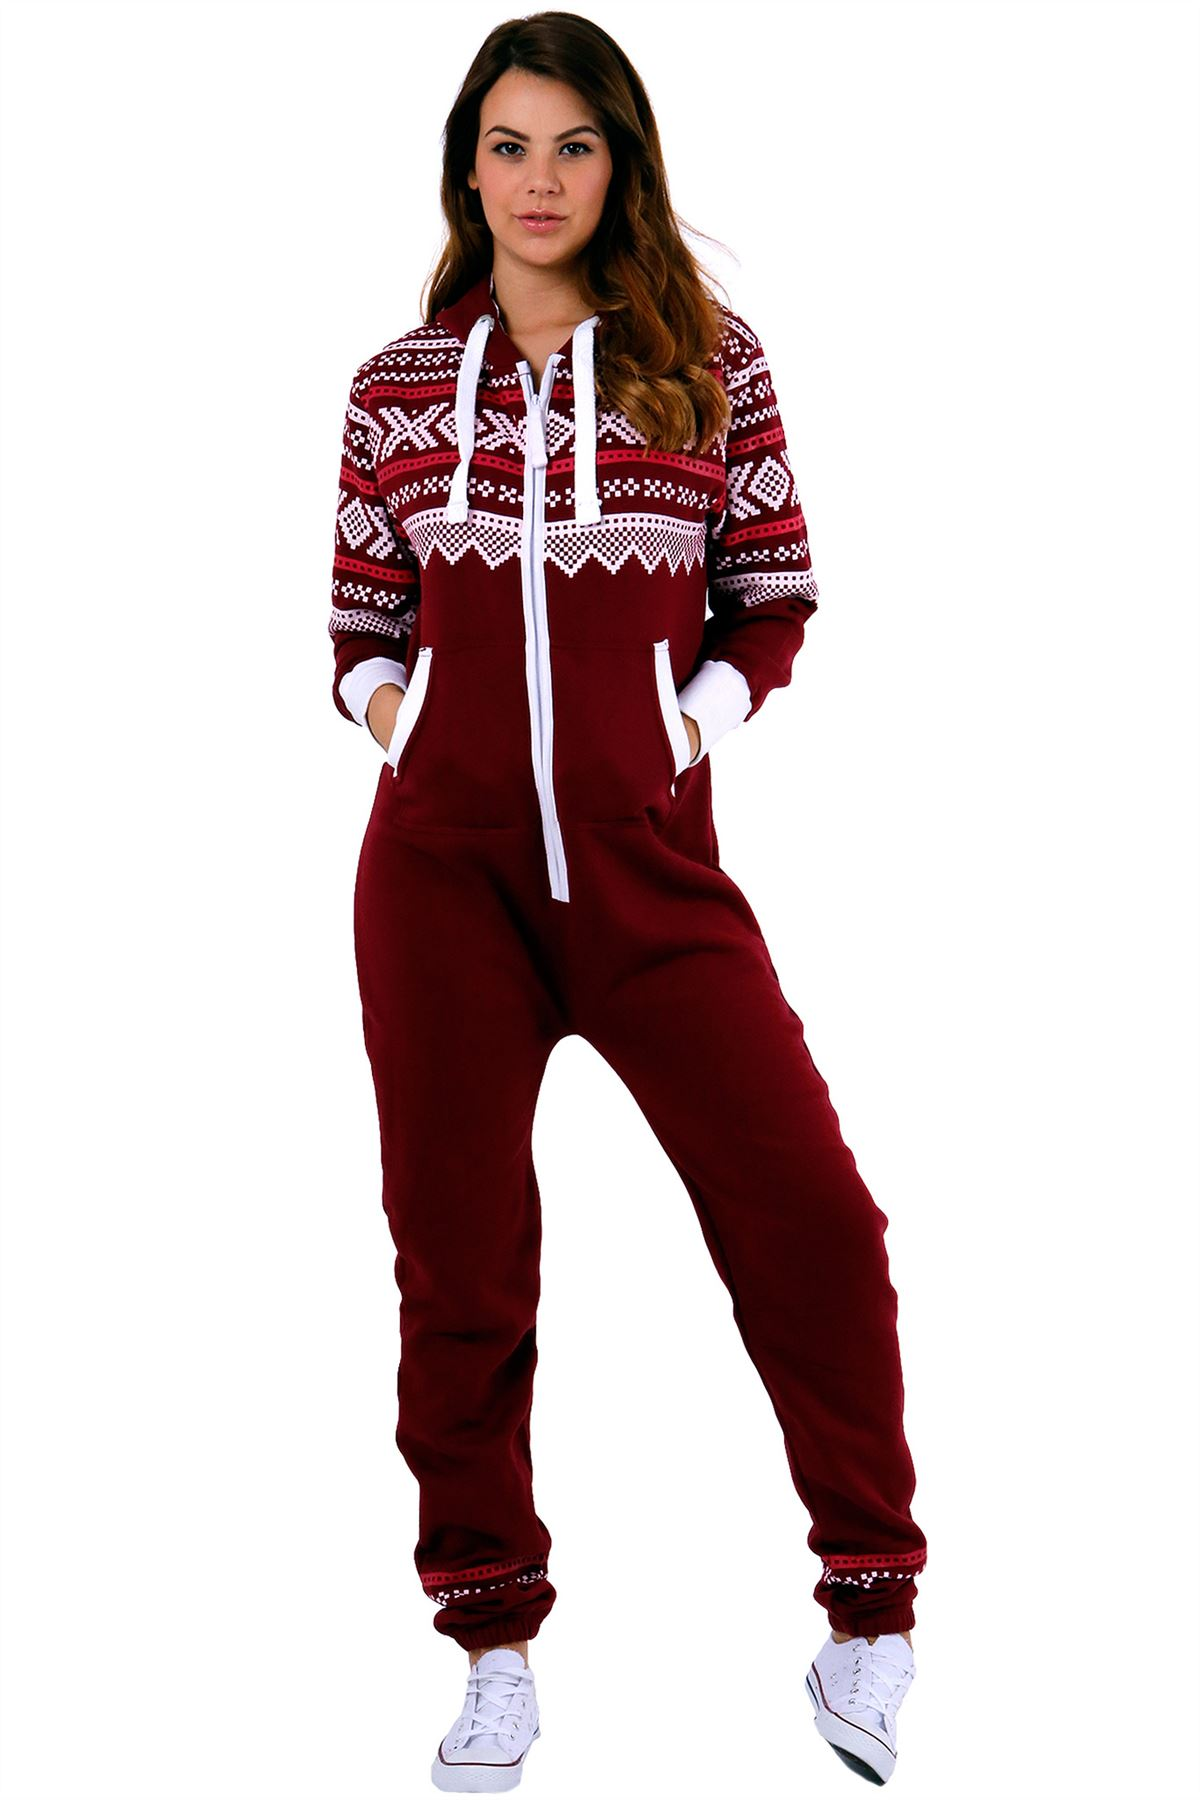 Which size onesie pjs works for you? Get your adult & teen onesie here! Yahoo! Get your adult & teen onesie here!